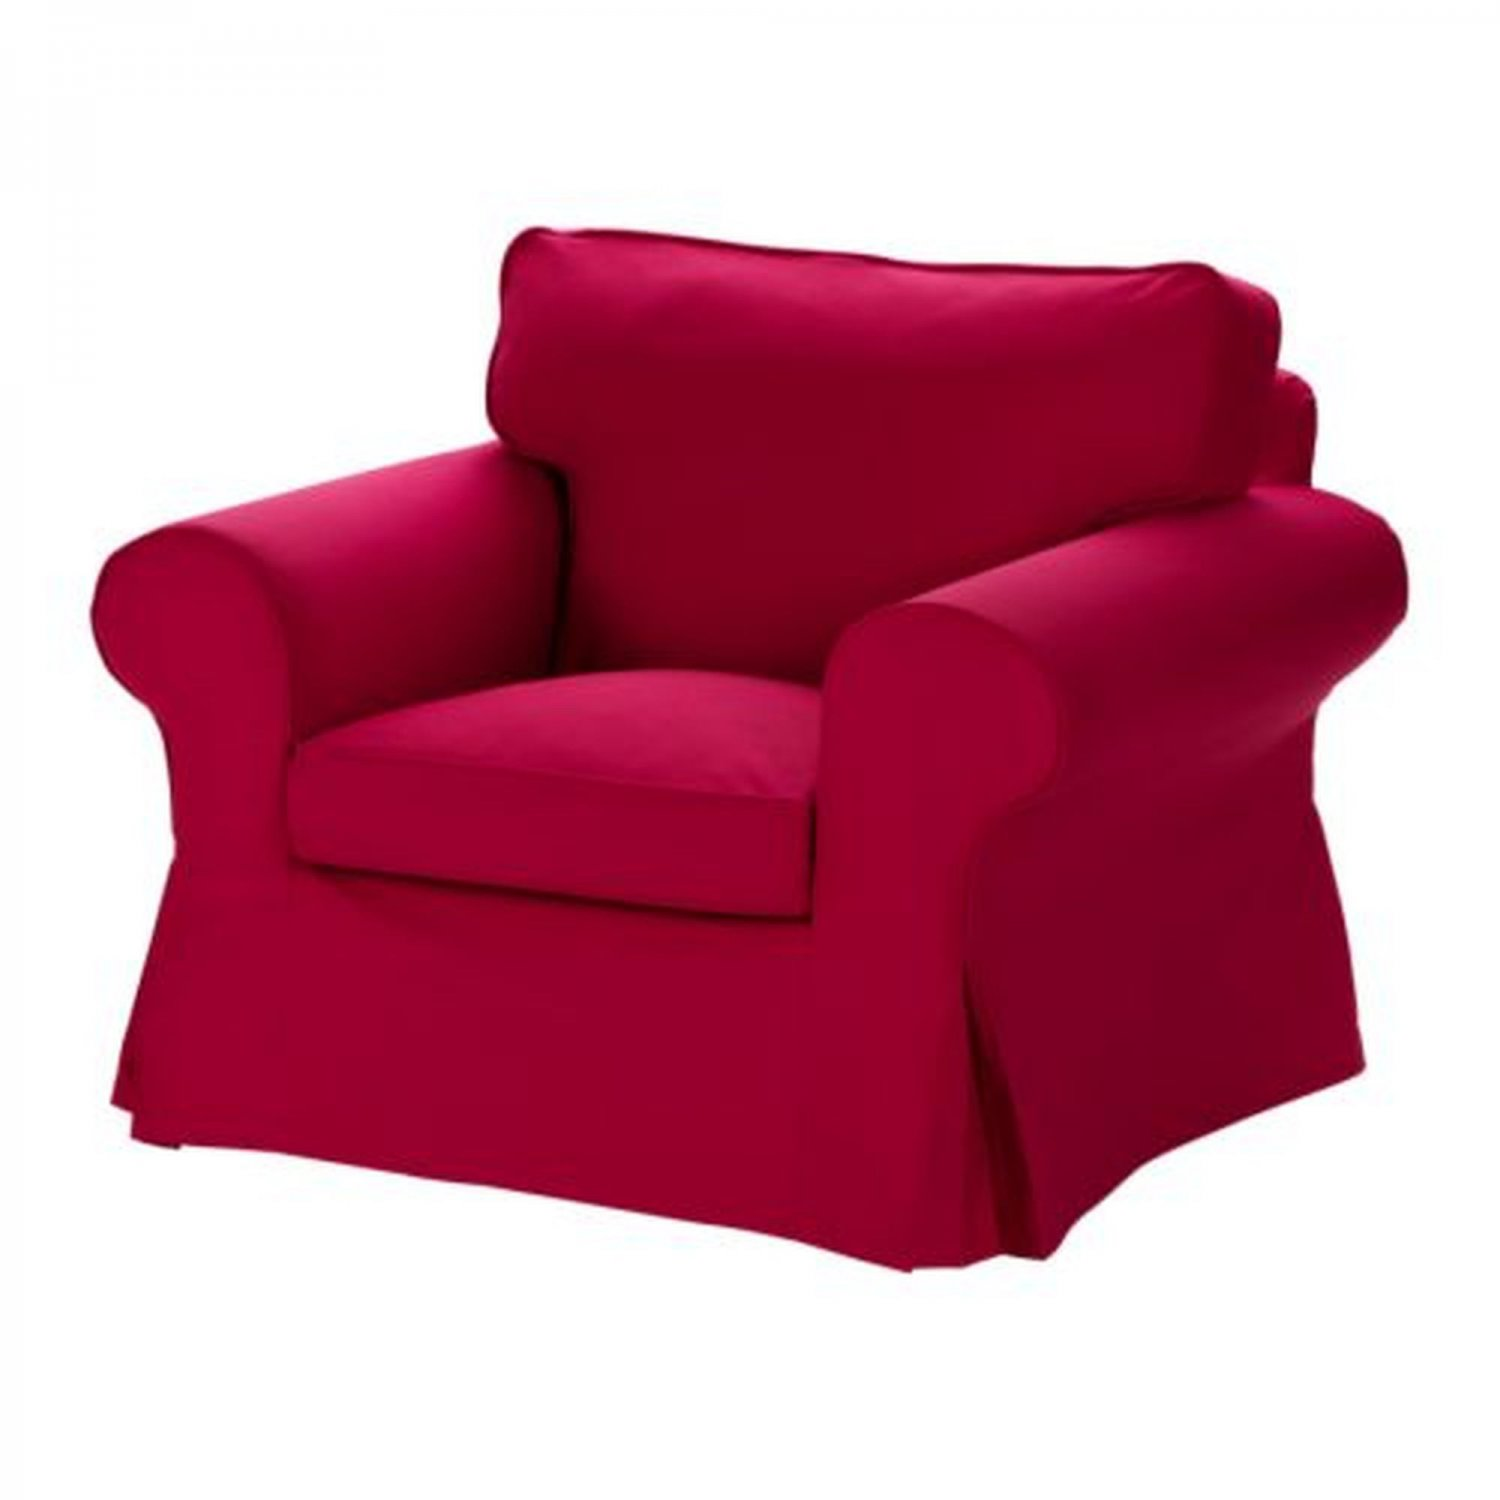 ikea jennylund chair covers uk big leather ektorp armchair slipcover cover idemo red new